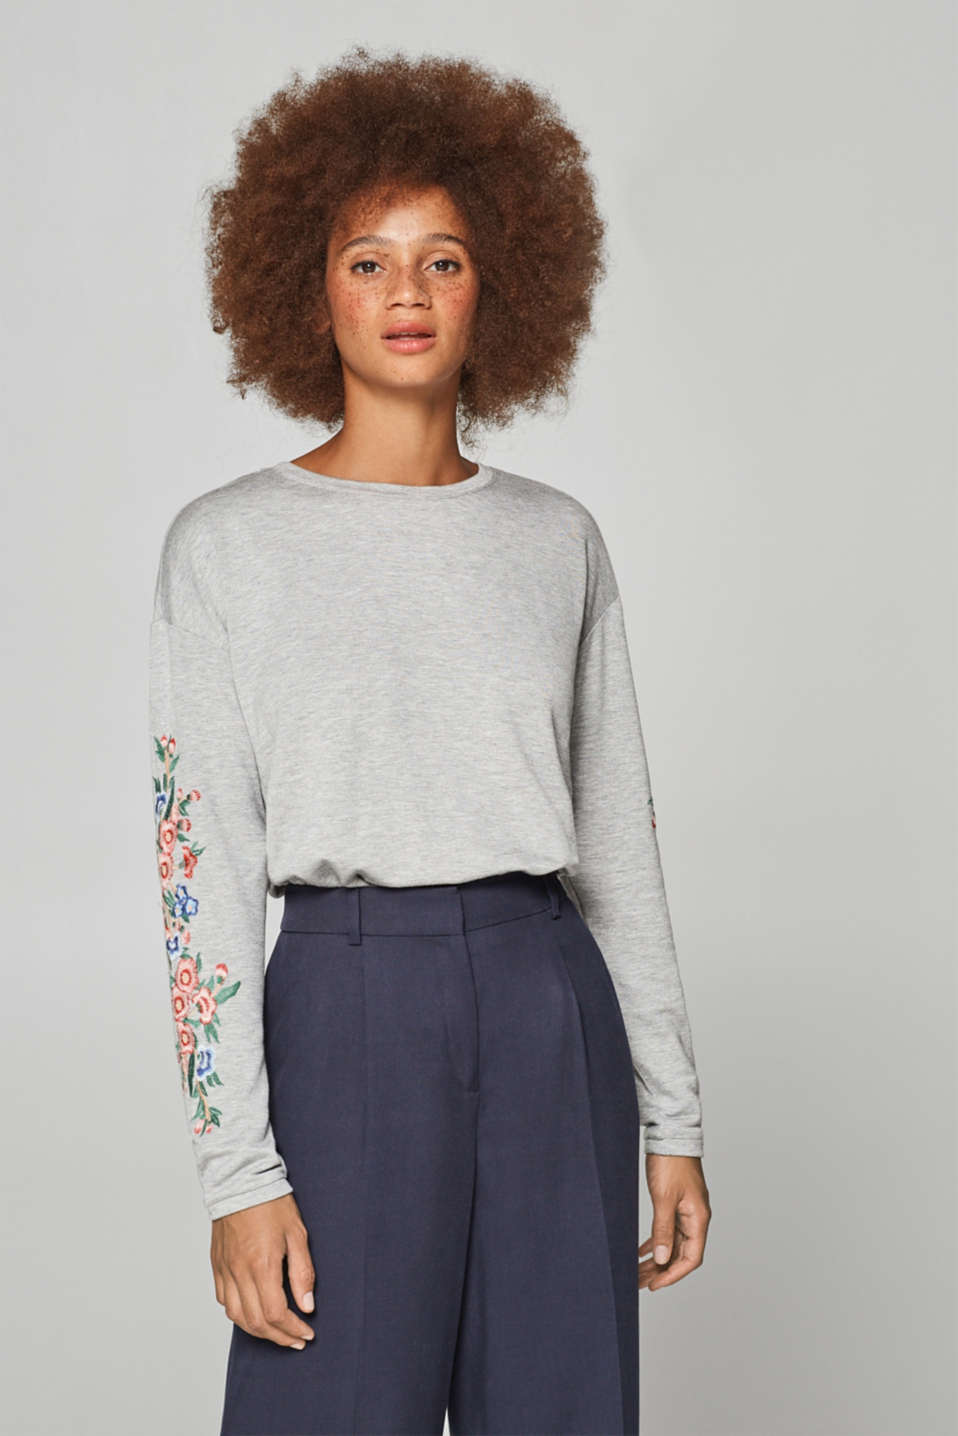 edc - Long sleeve top with embroidery and added stretch